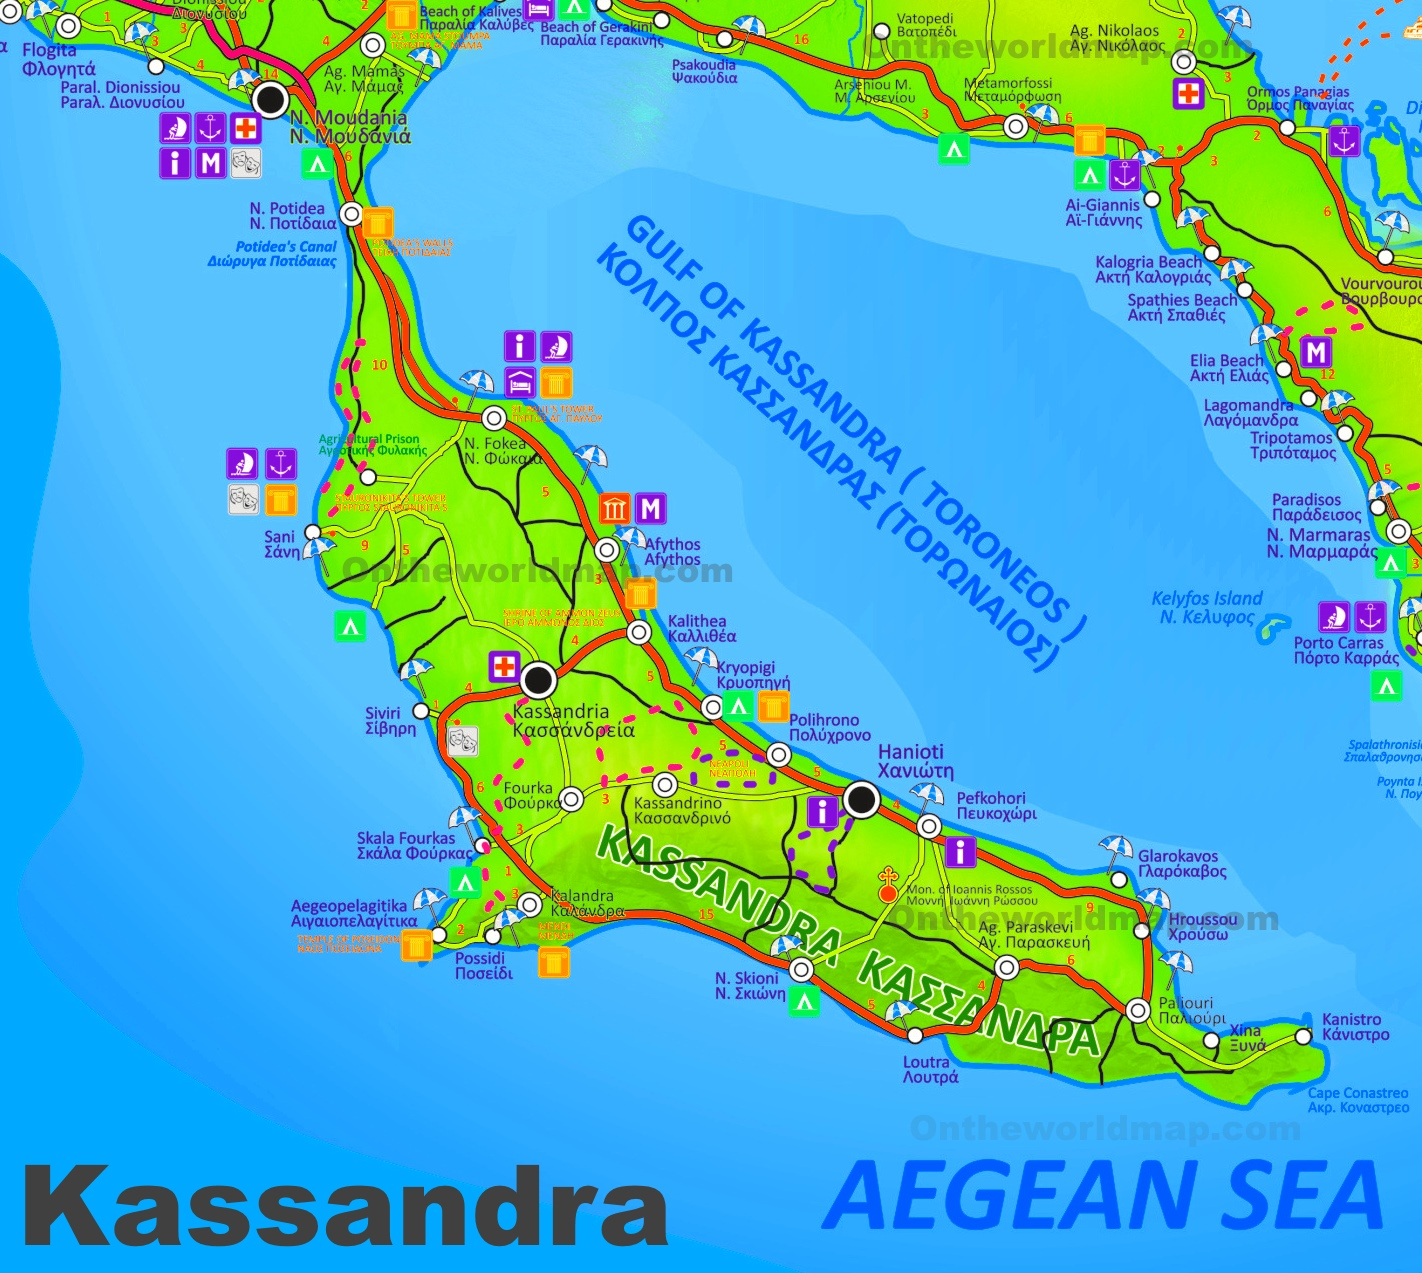 Kassandra tourist attractions map